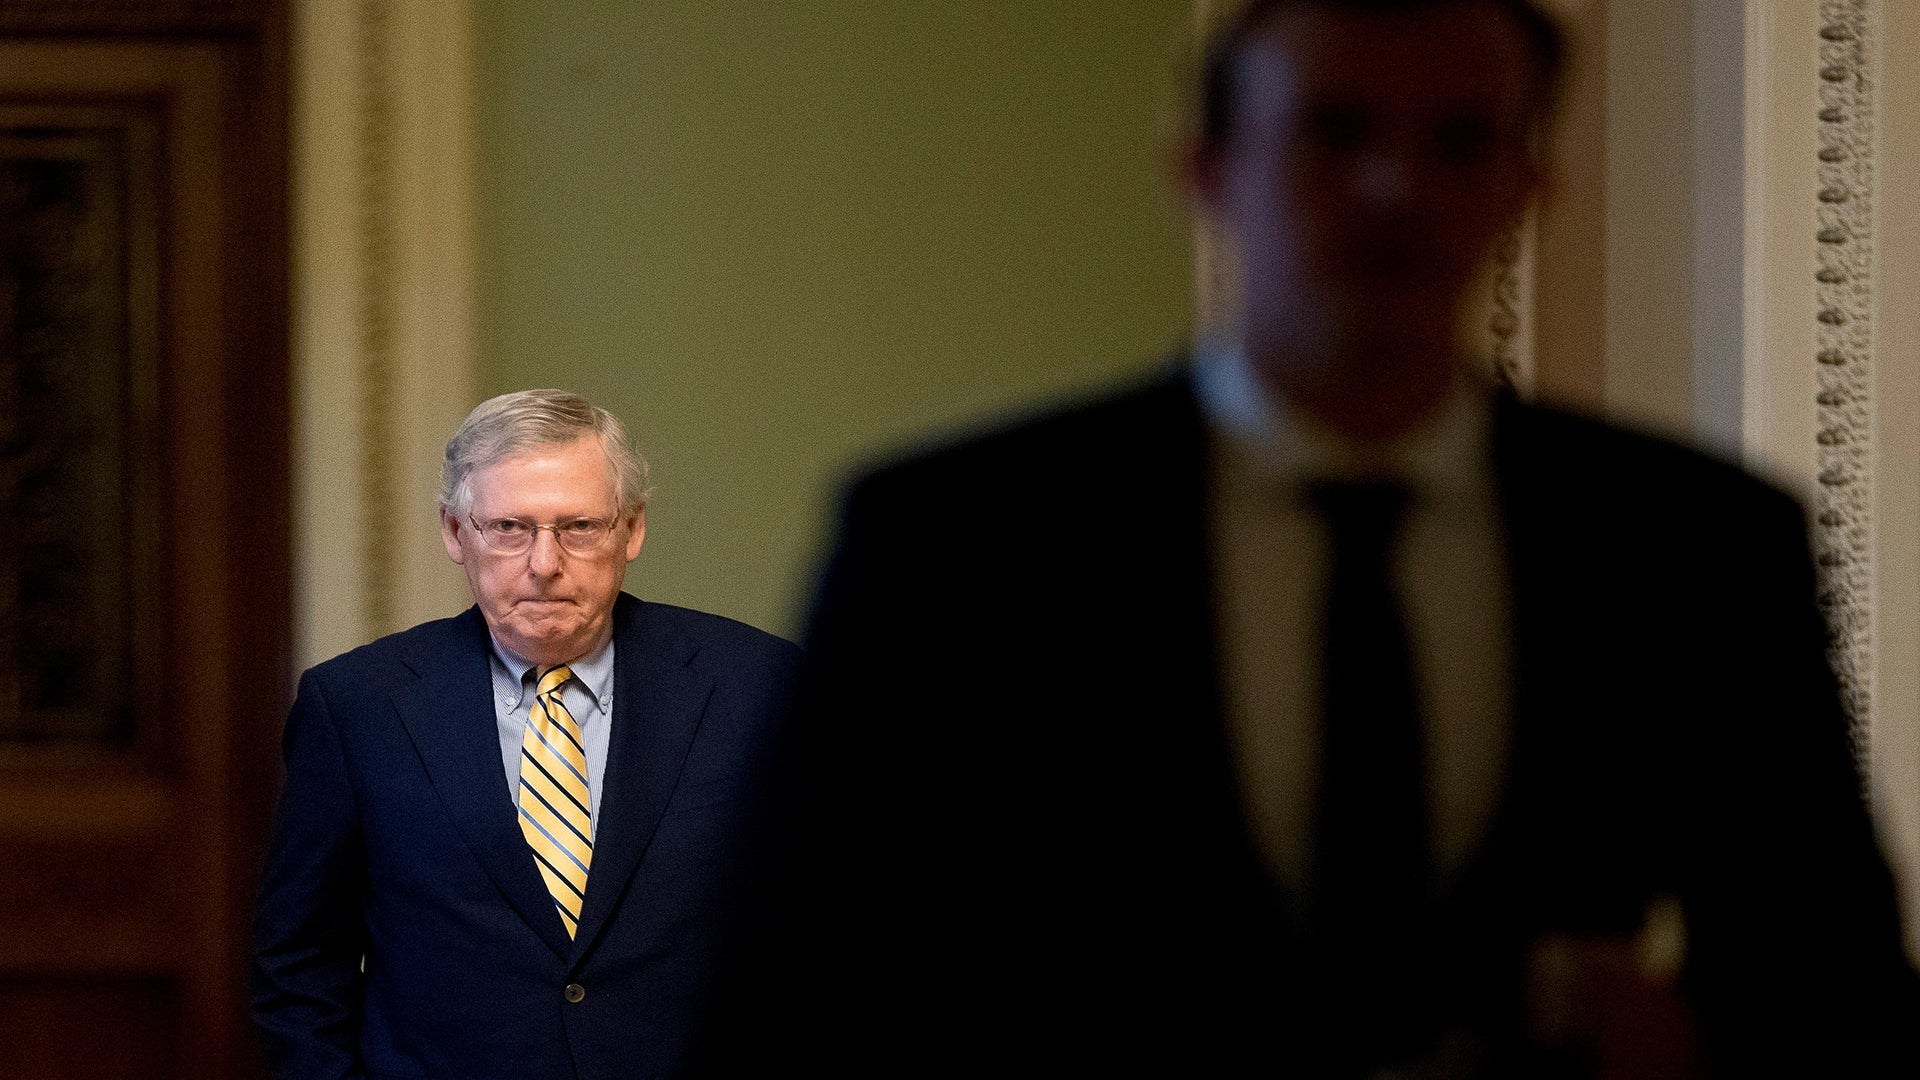 The Health Care Bill's Collapse Leaves A Divided GOP At The Crossroads